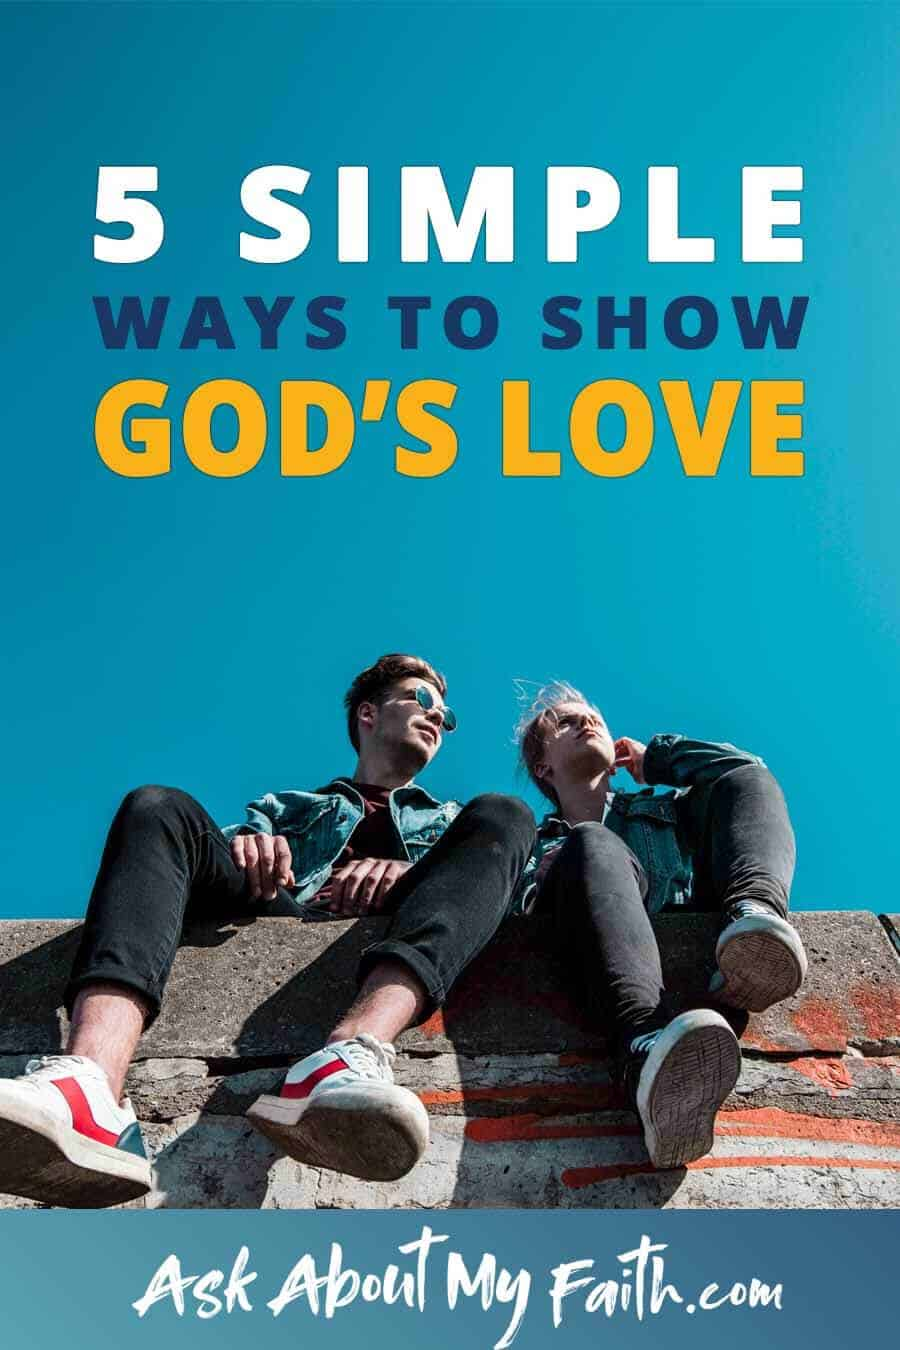 5 Simple Ways to Show God's Love to Others | Christian Faith Resources | Share Your Faith